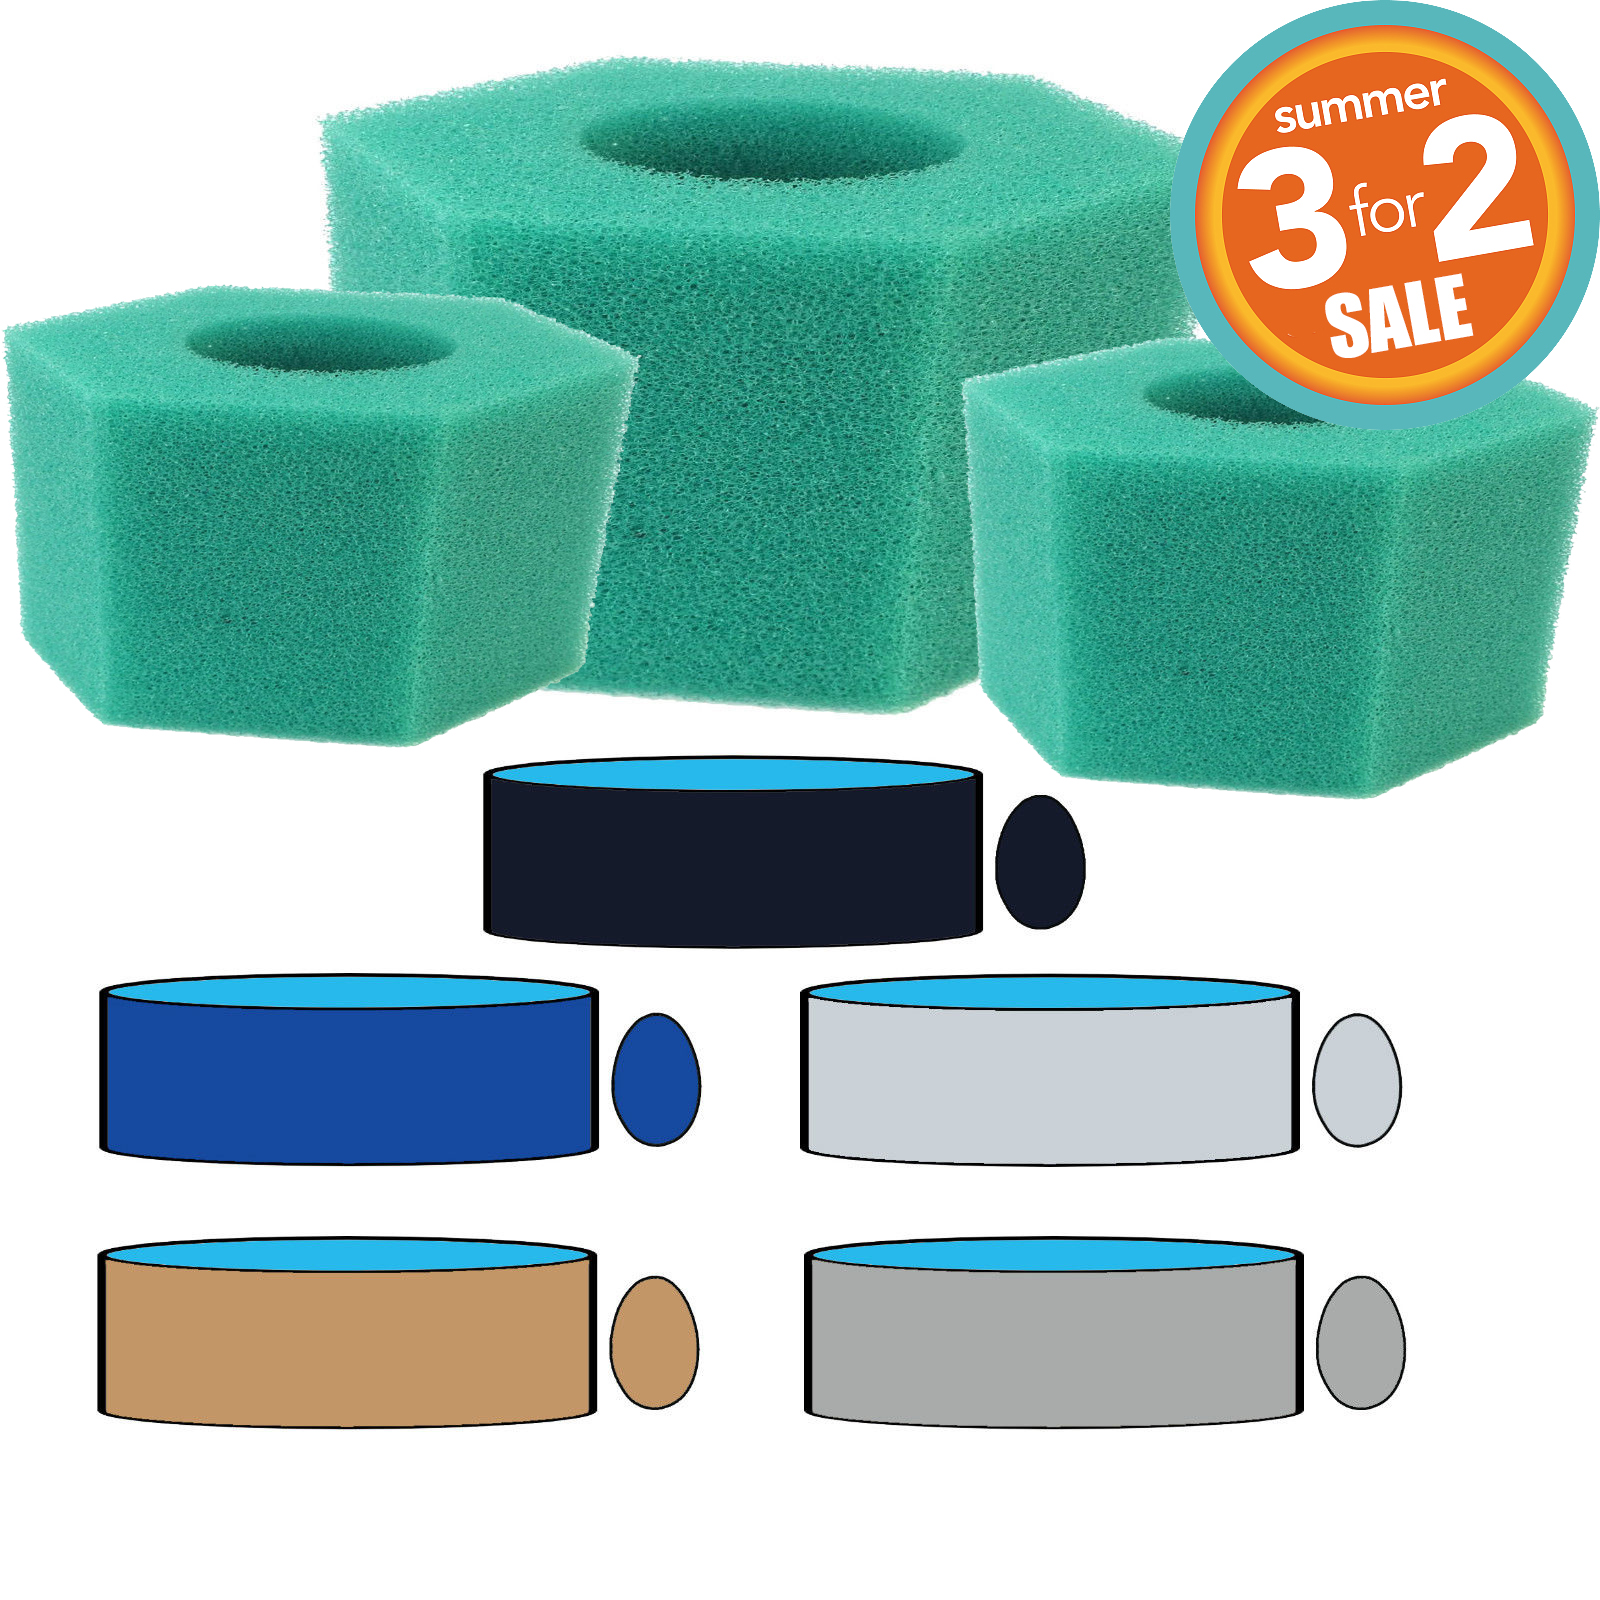 Lay Z Spa Filters 3 for 2